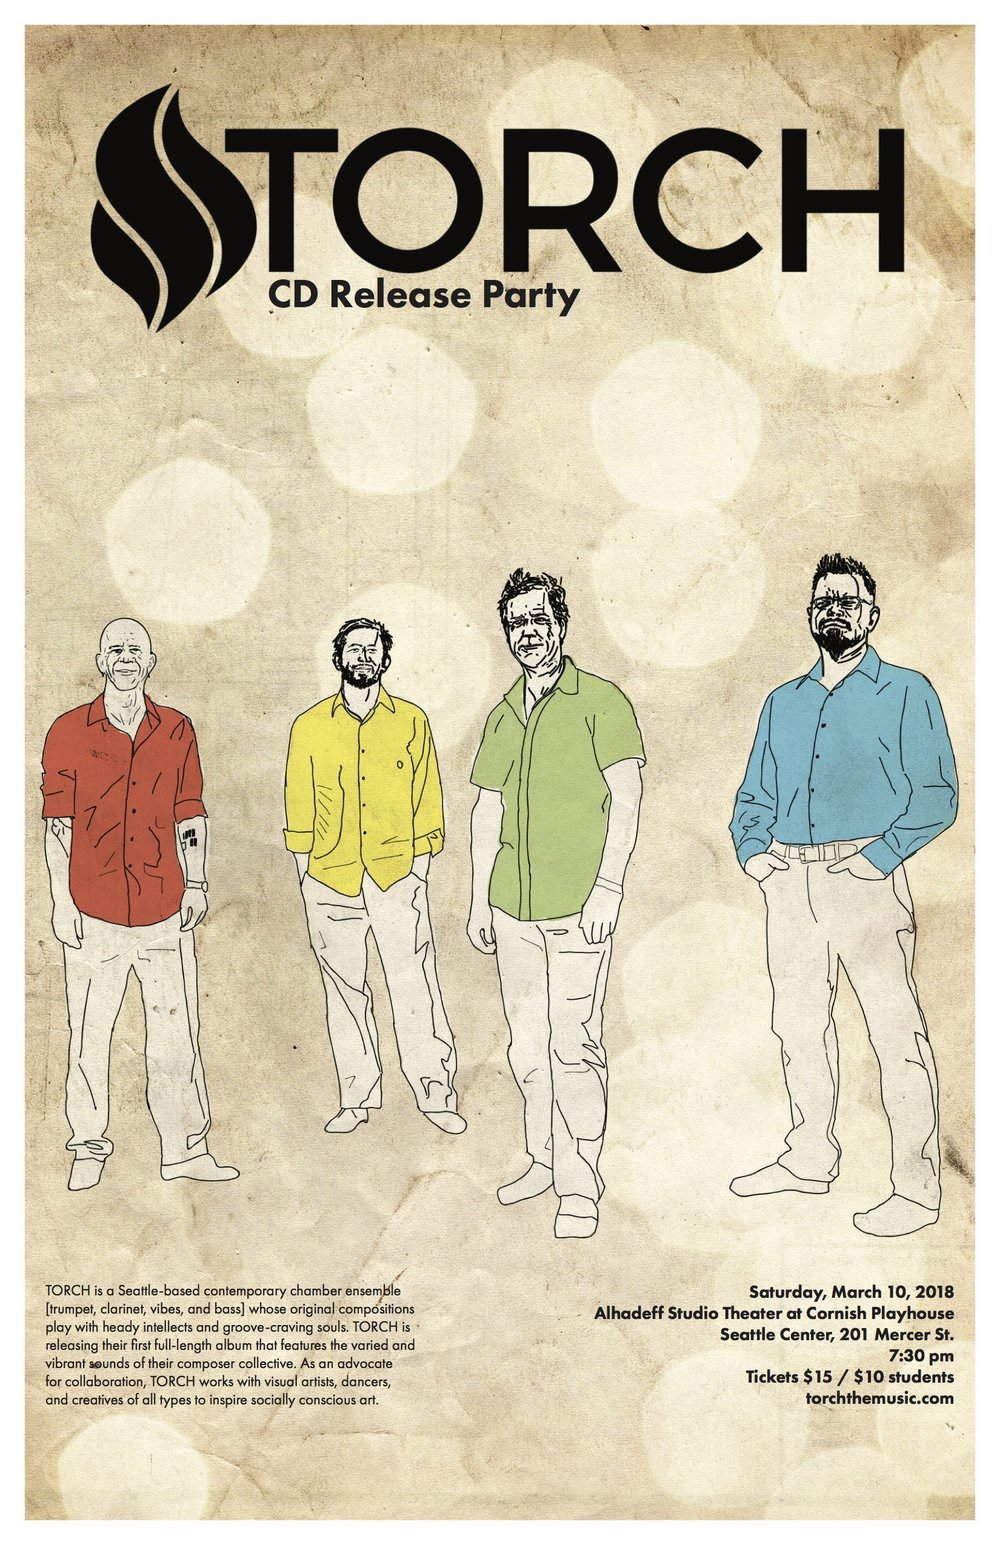 TORCH CD Release Poster.jpg